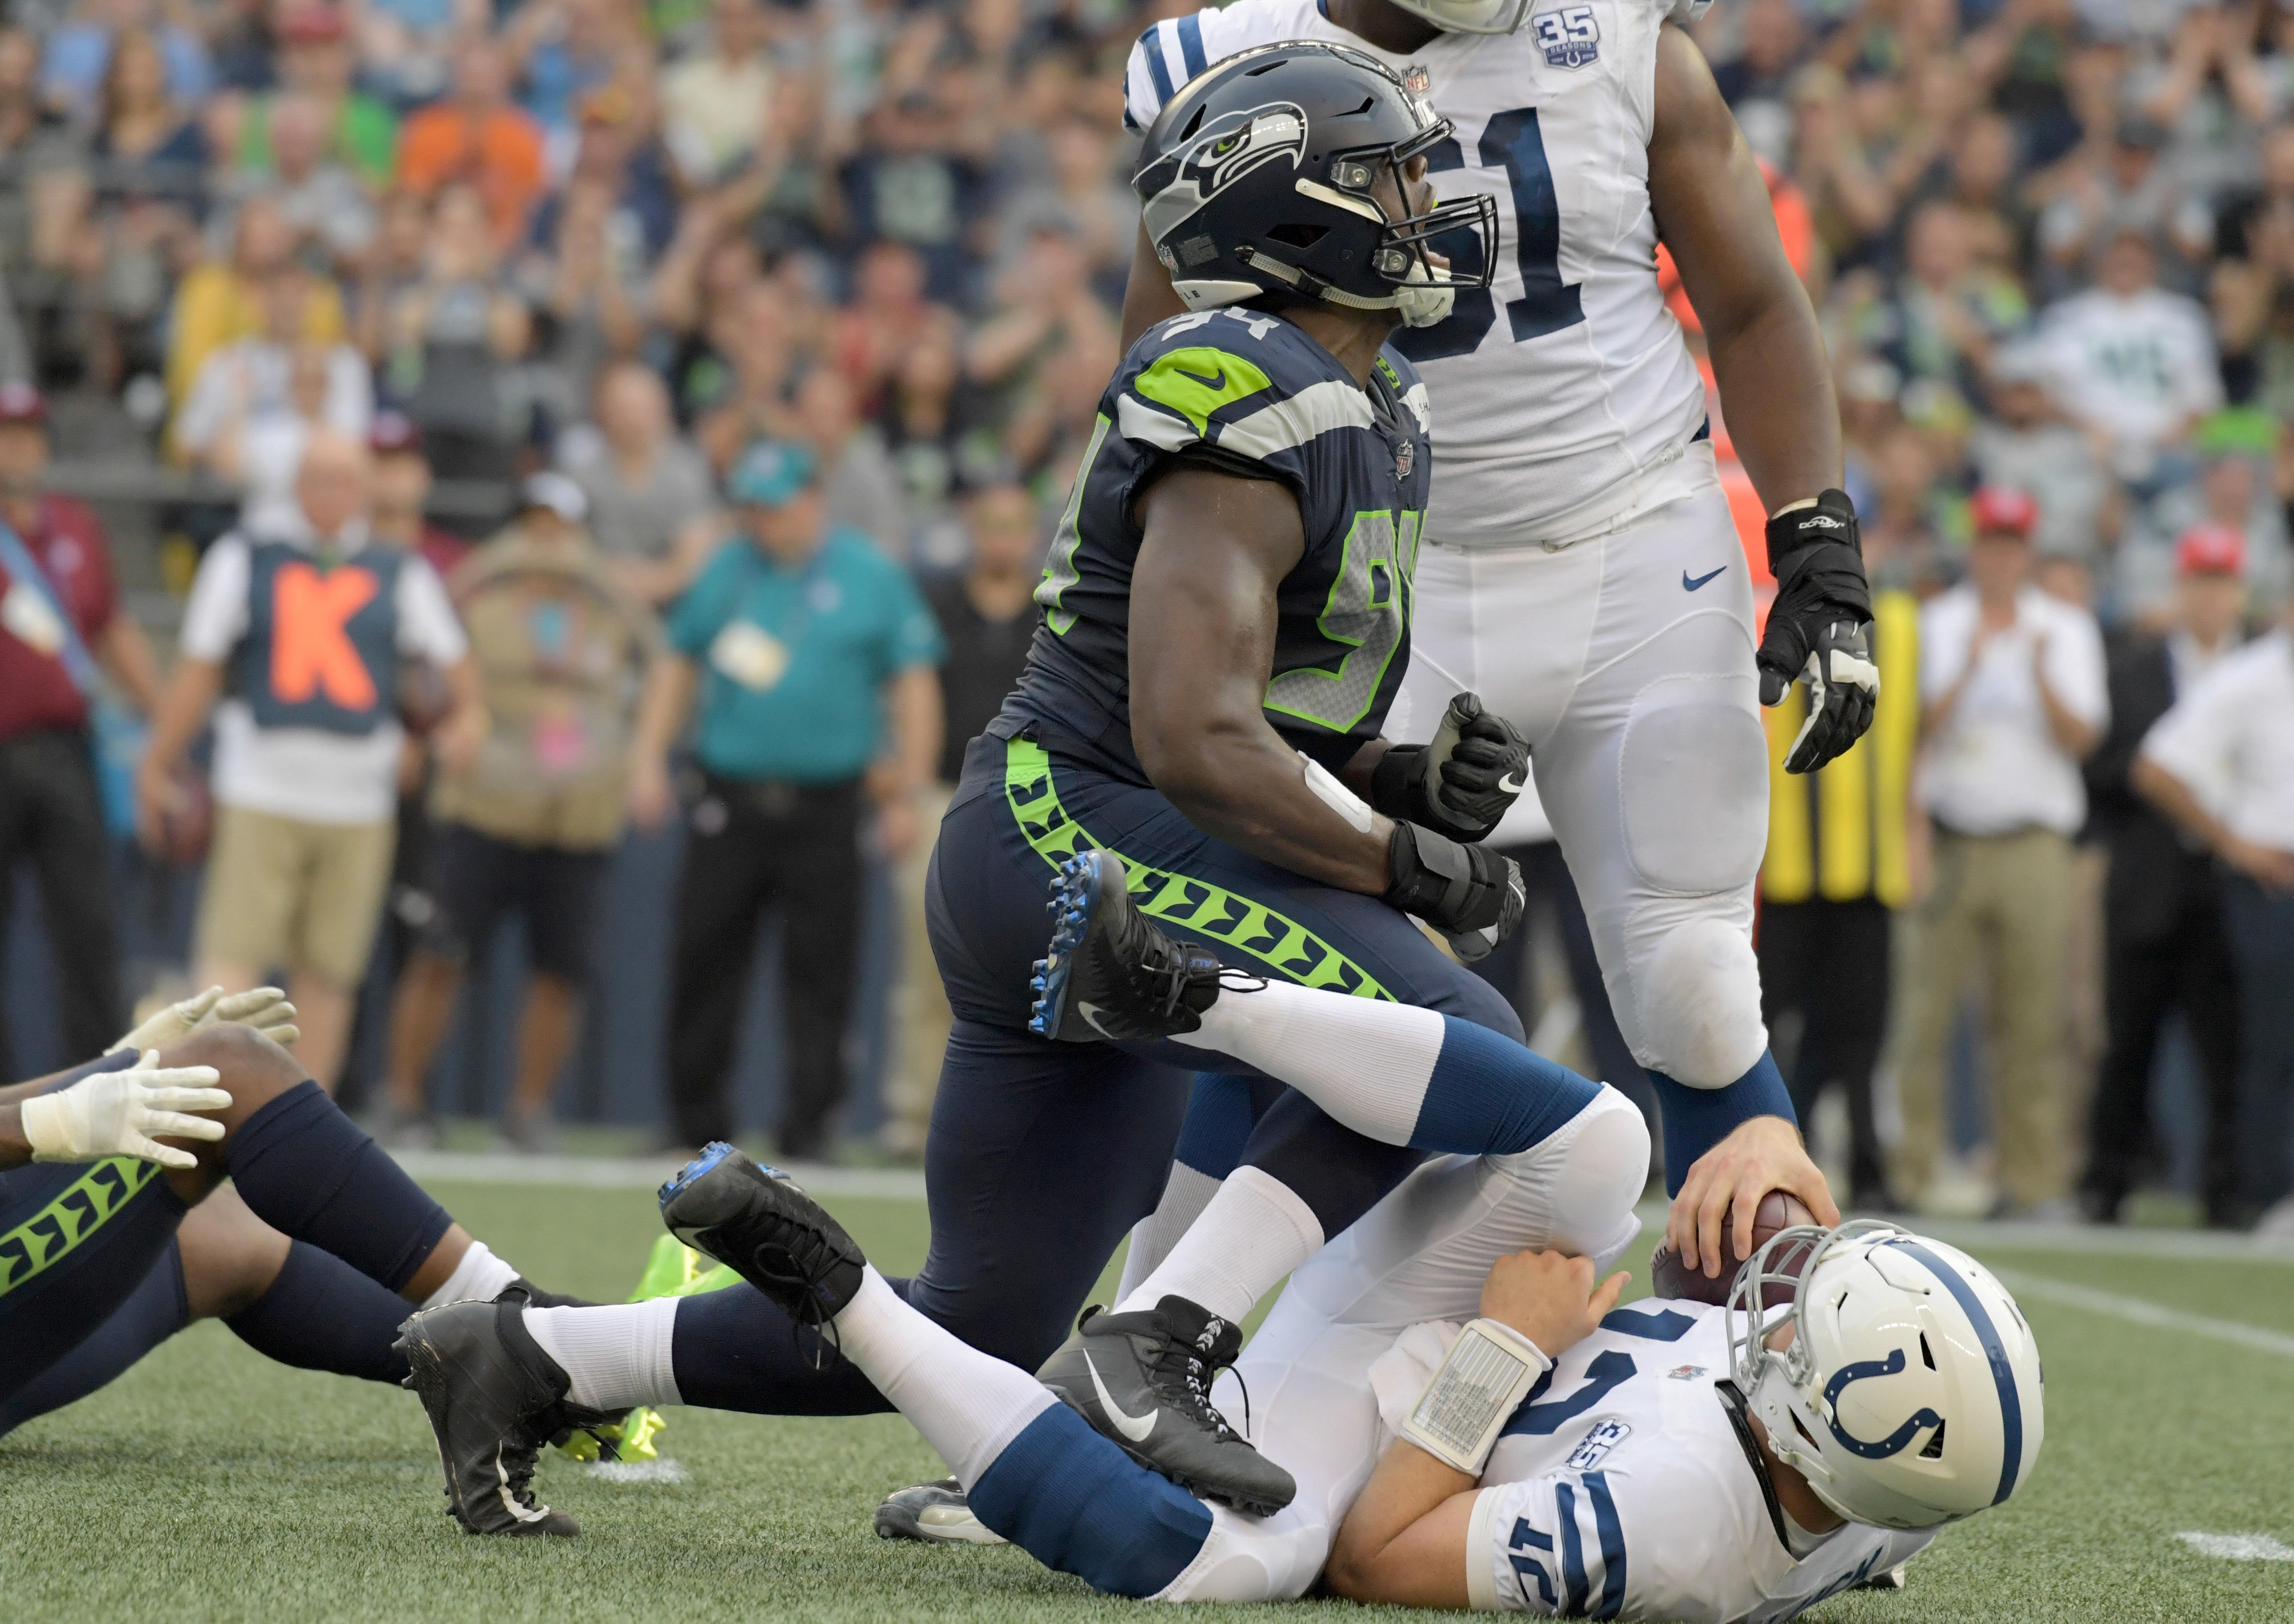 NFL: Indianapolis Colts at Seattle Seahawks